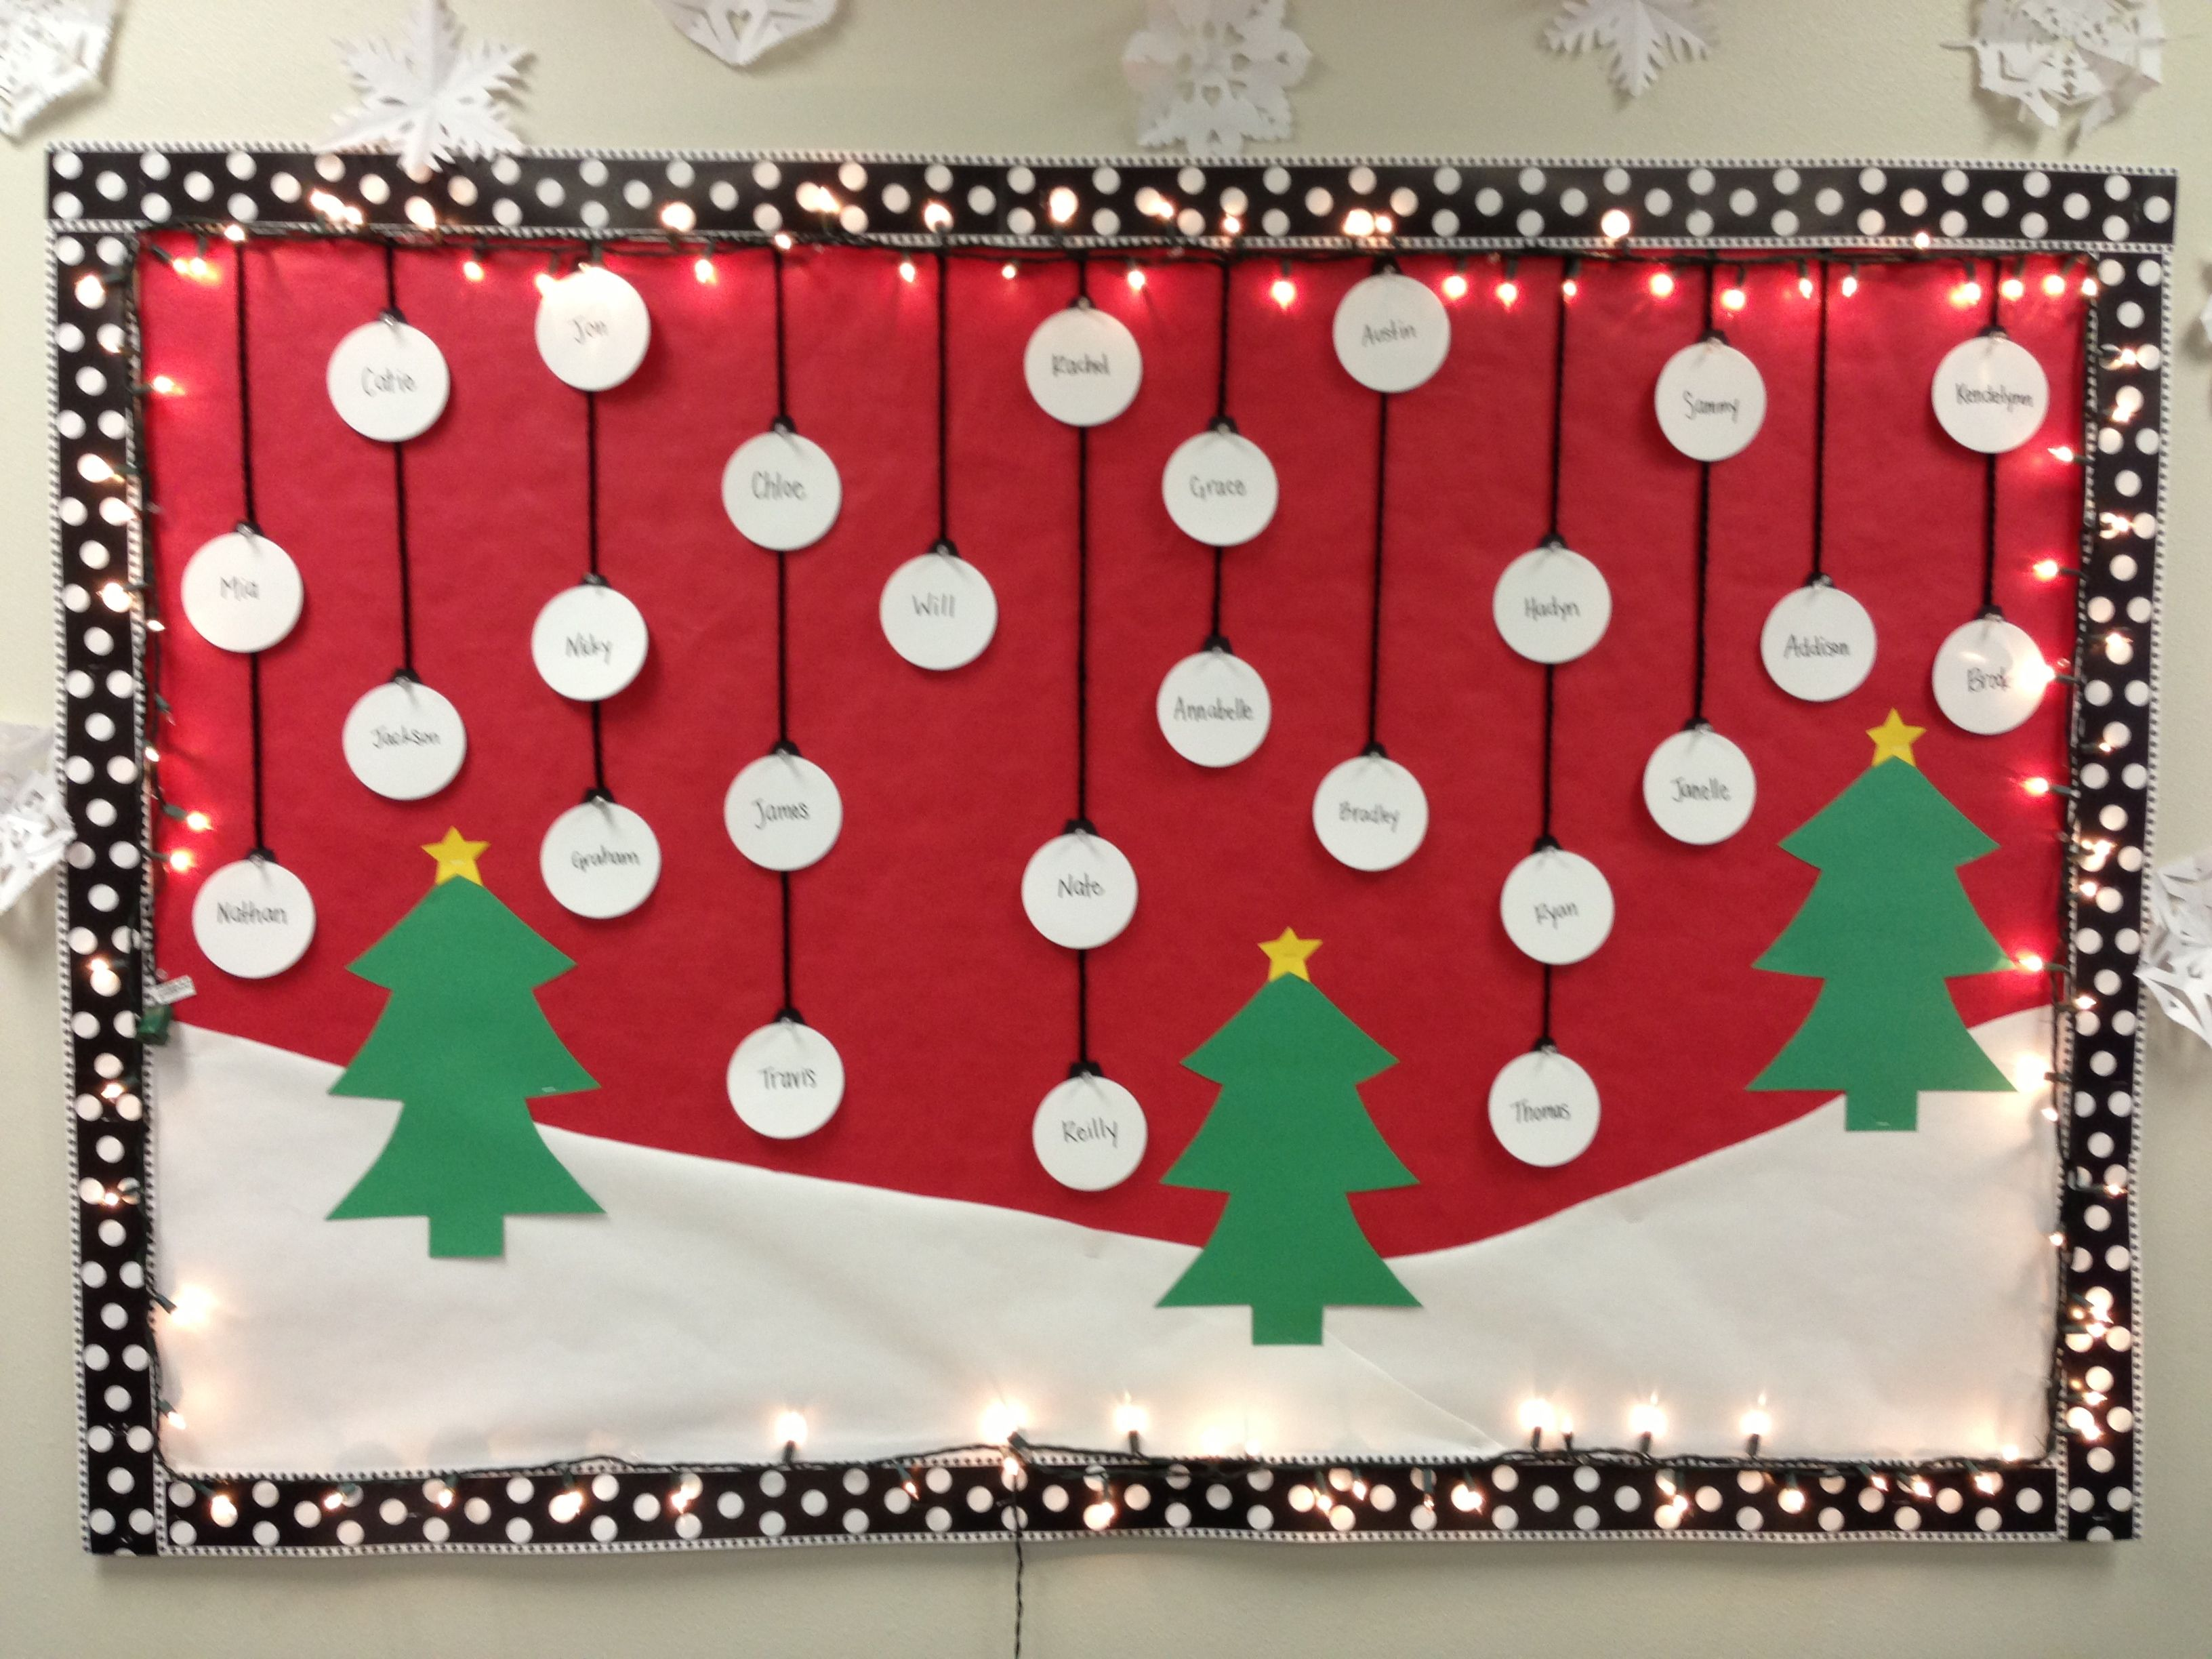 White Christmas Classroom Decorations : Christmas bulletin board w trees snow classroom decor